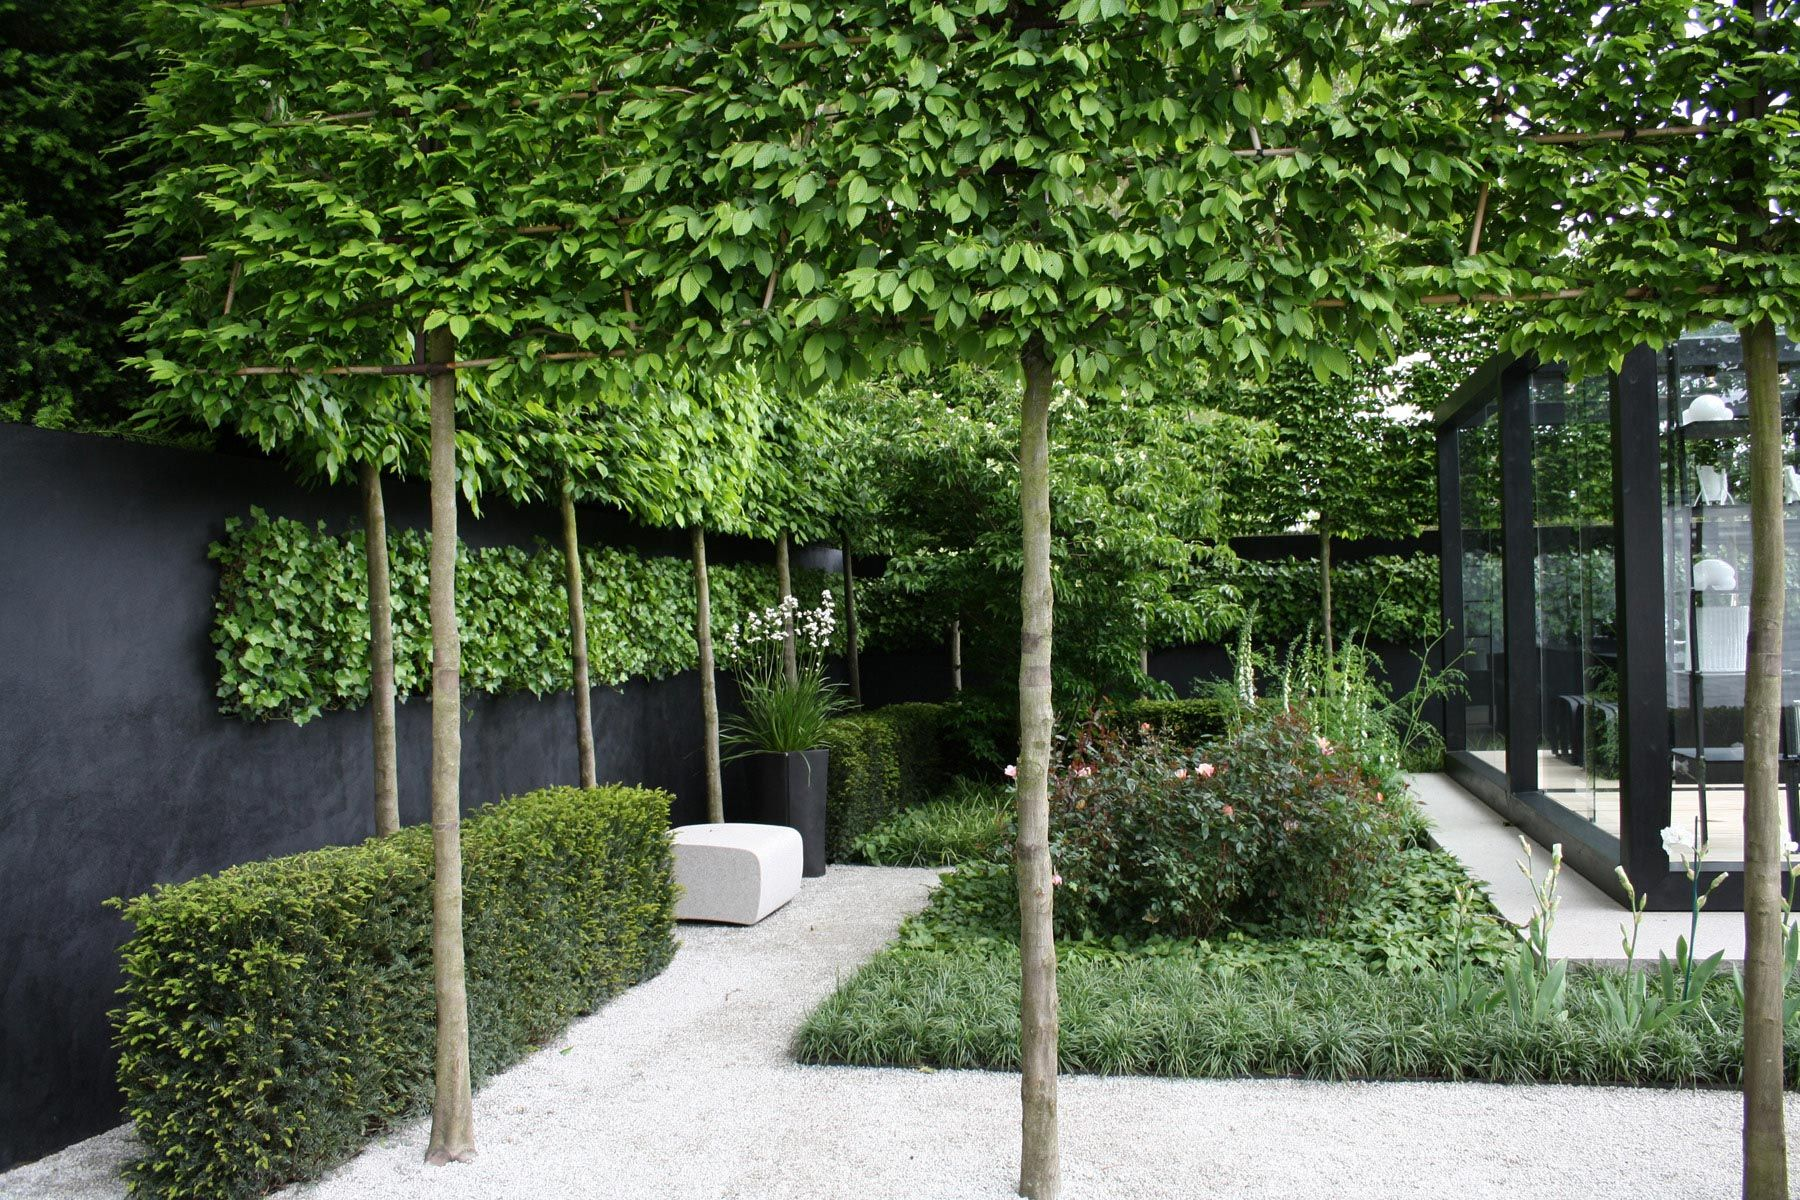 Garden Design Trees google image result for http://andersonlandscapedesign.co.uk/ald